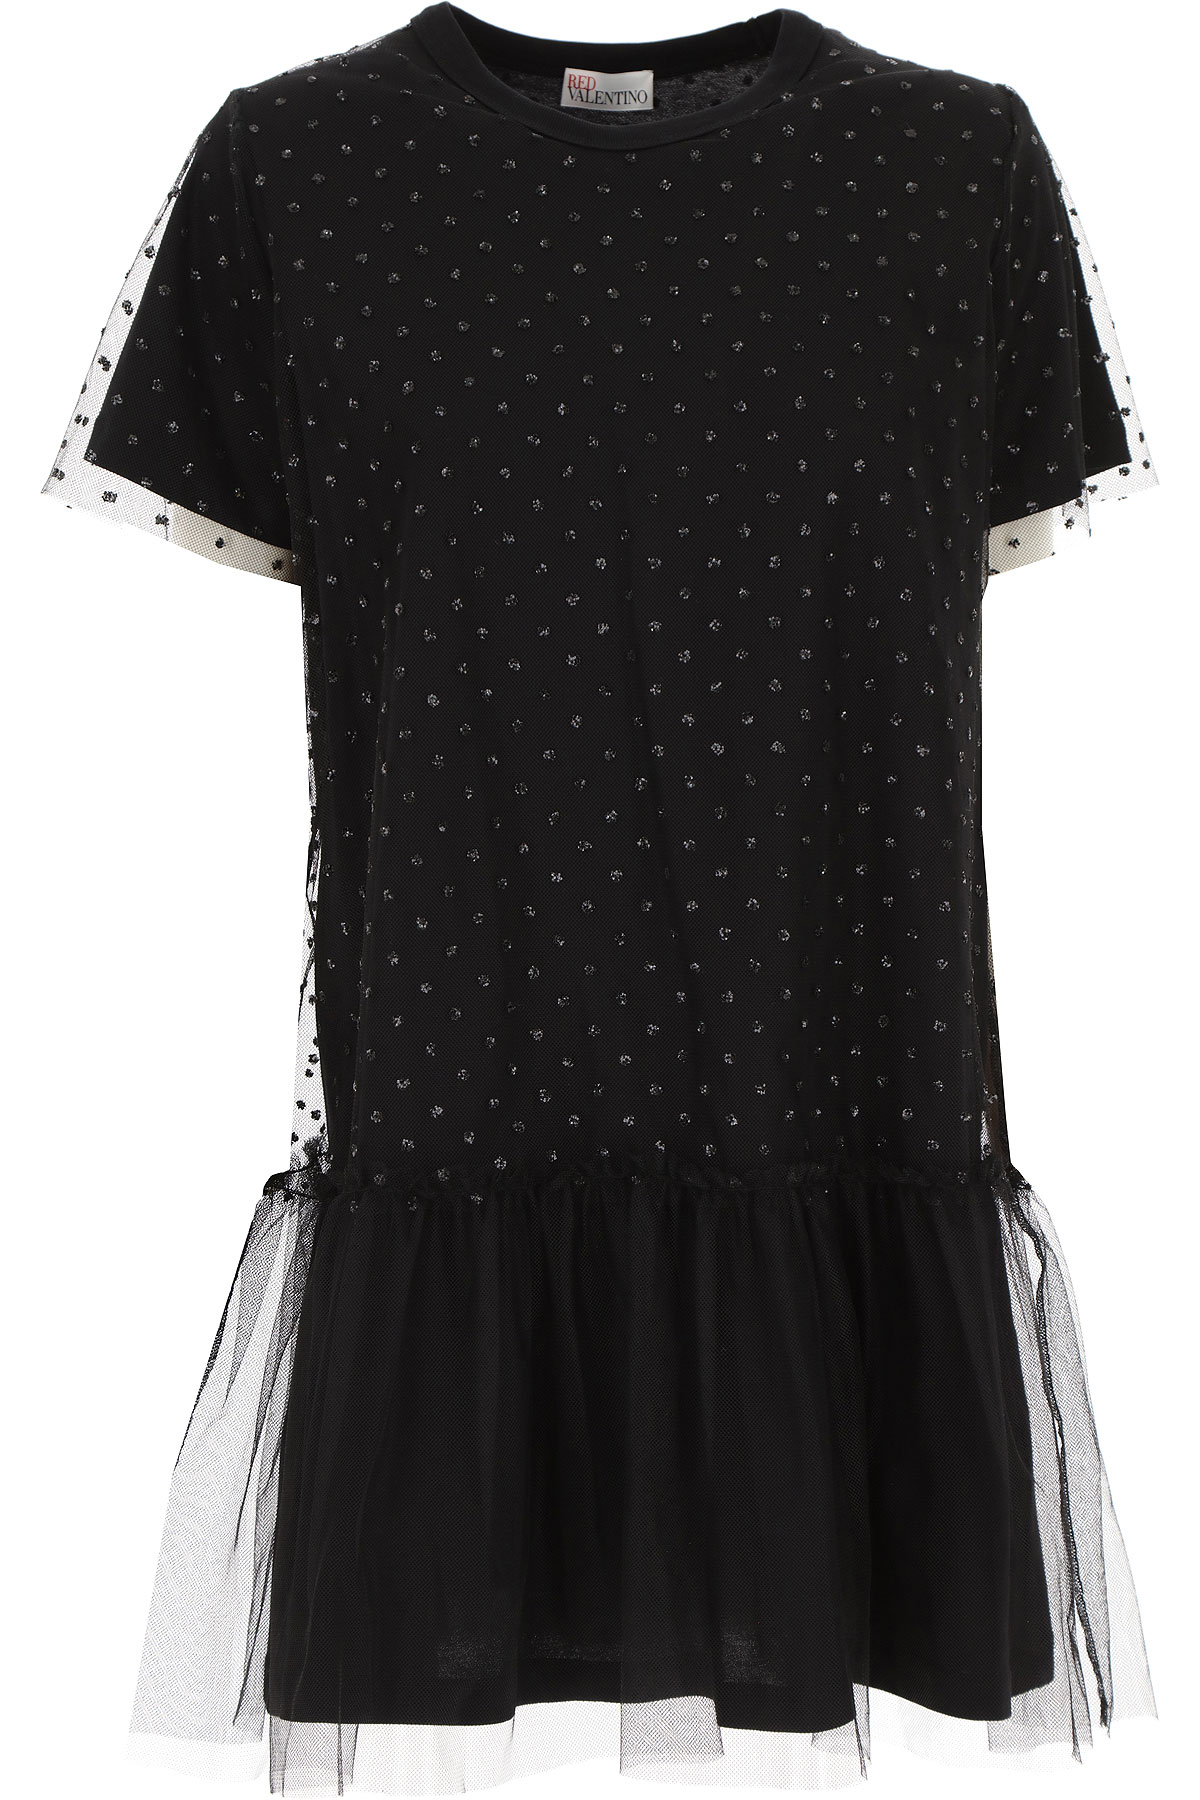 RED Valentino Dress for Women, Evening Cocktail Party On Sale, Black, polyamide, 2019, 4 6